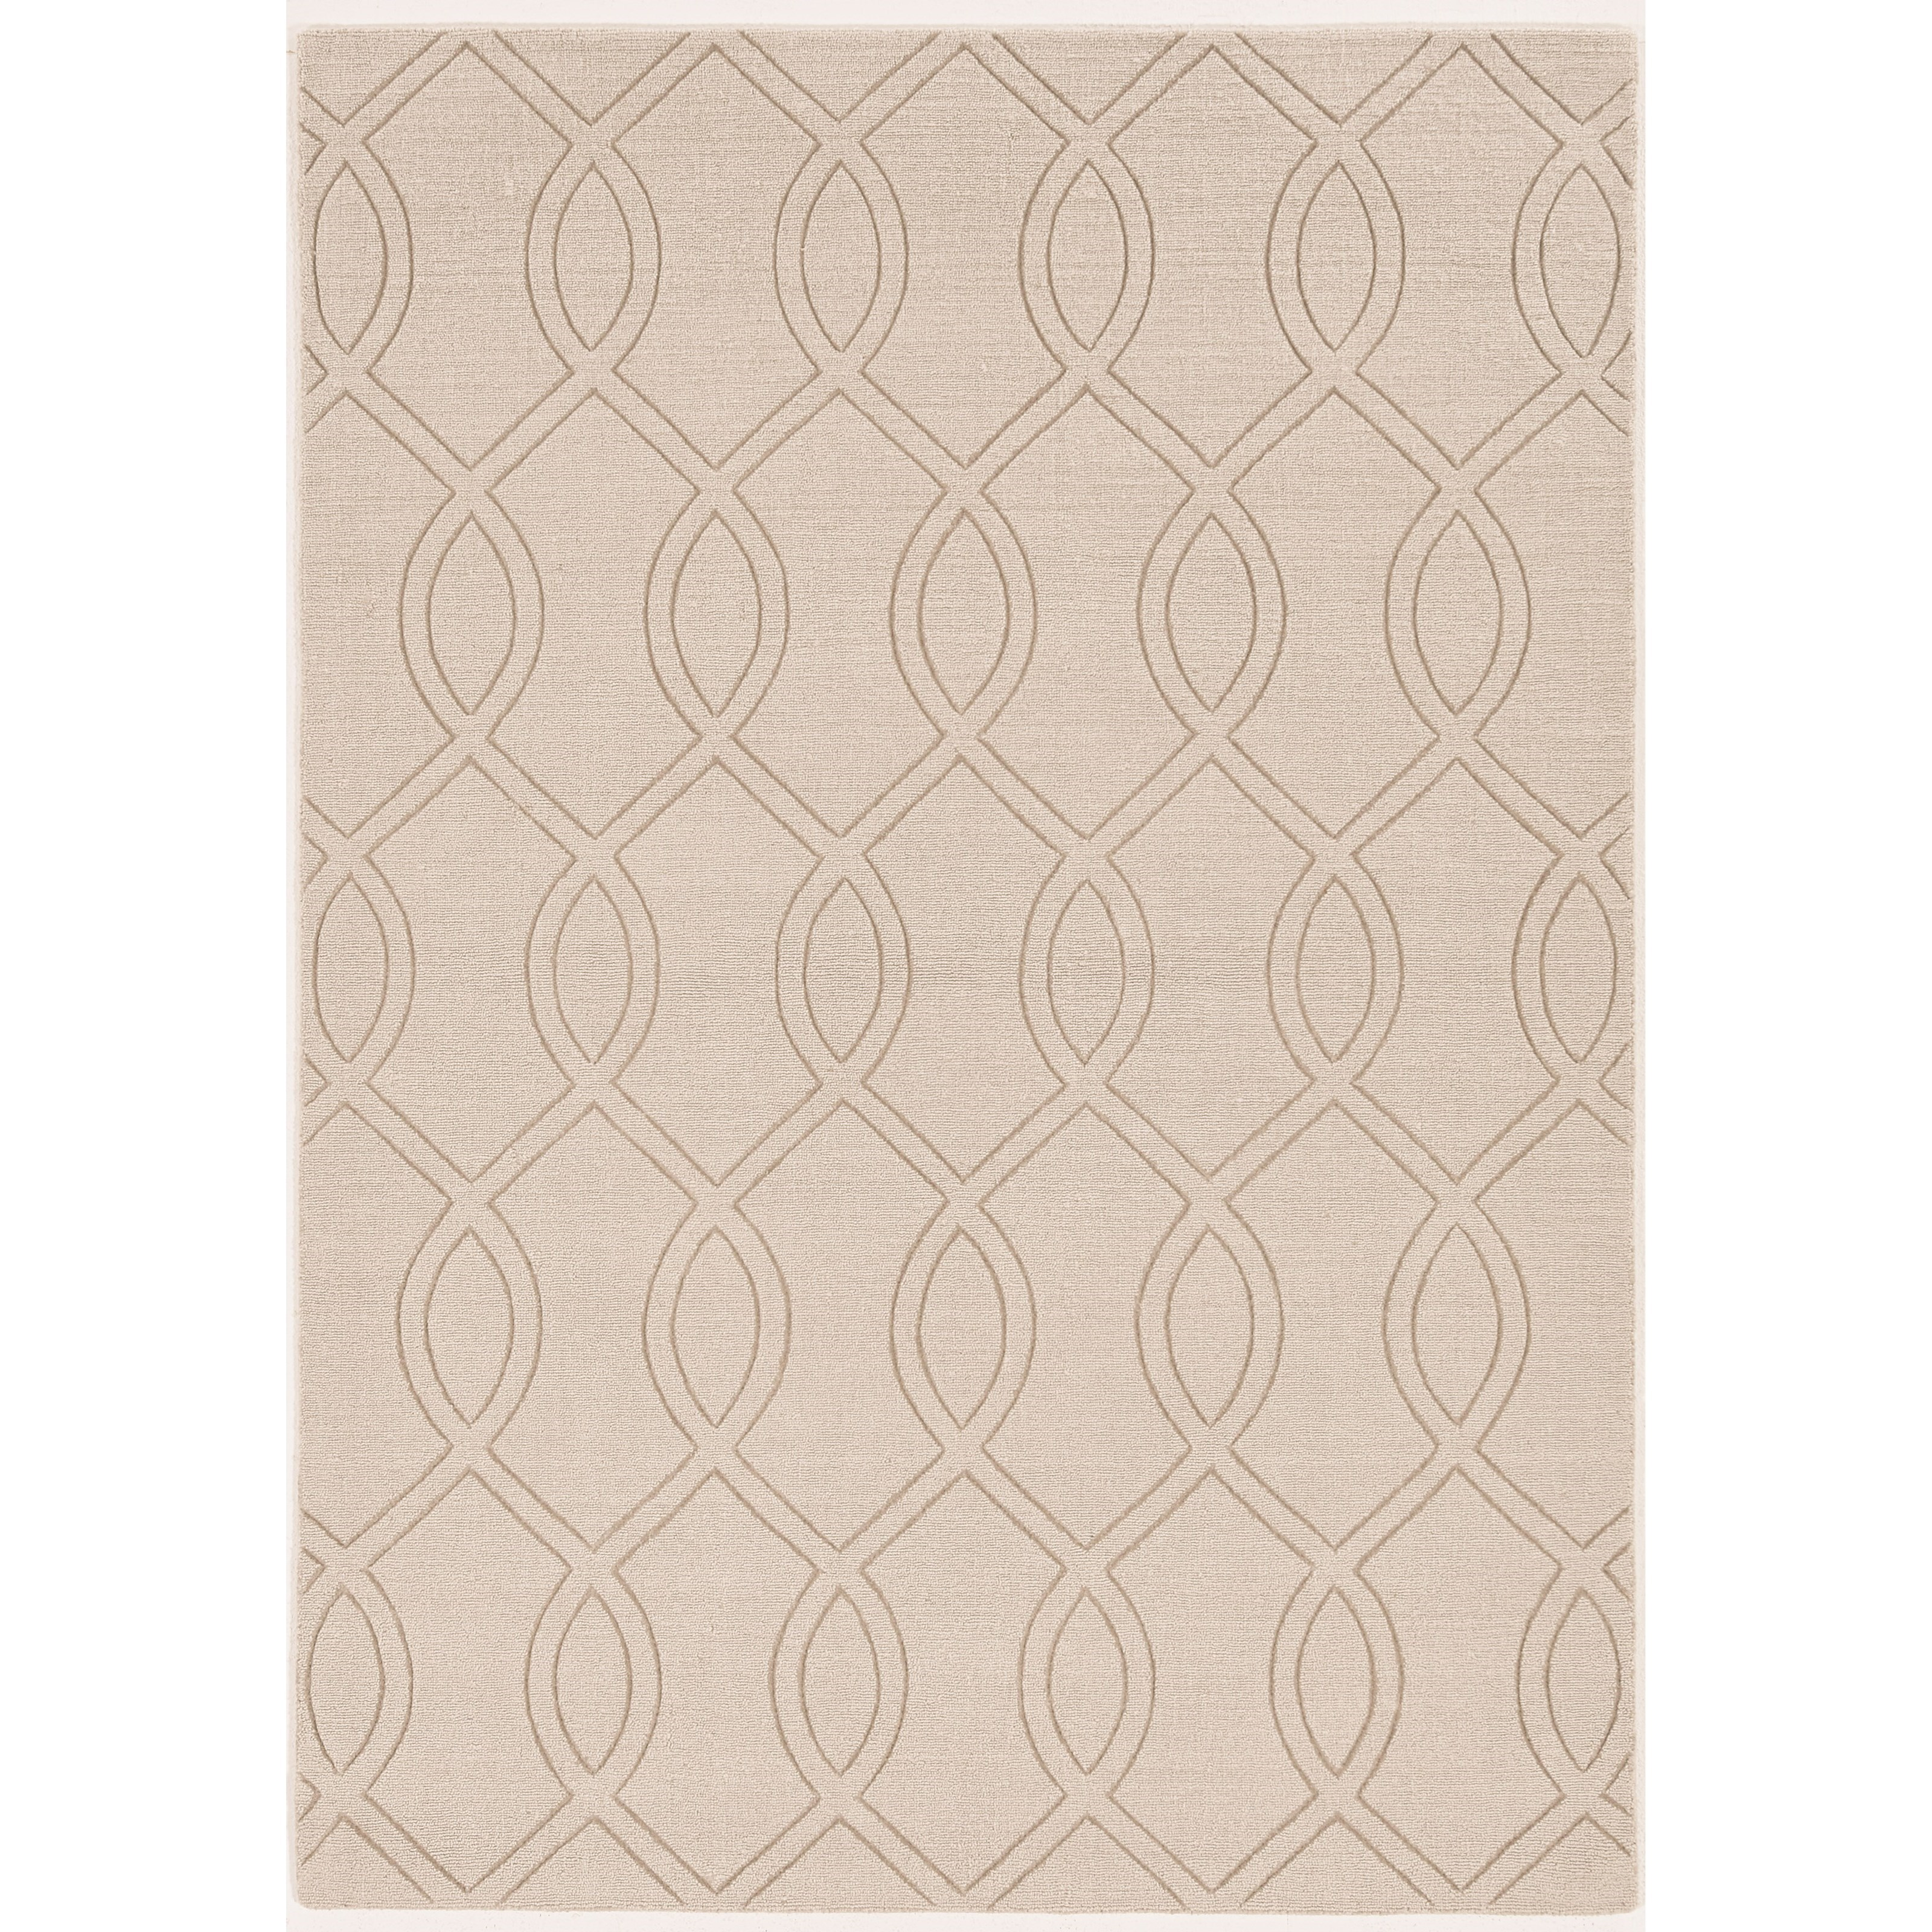 "Avery 7'6"" x 9'6"" Ivory Ellison Rug by Kas at Darvin Furniture"